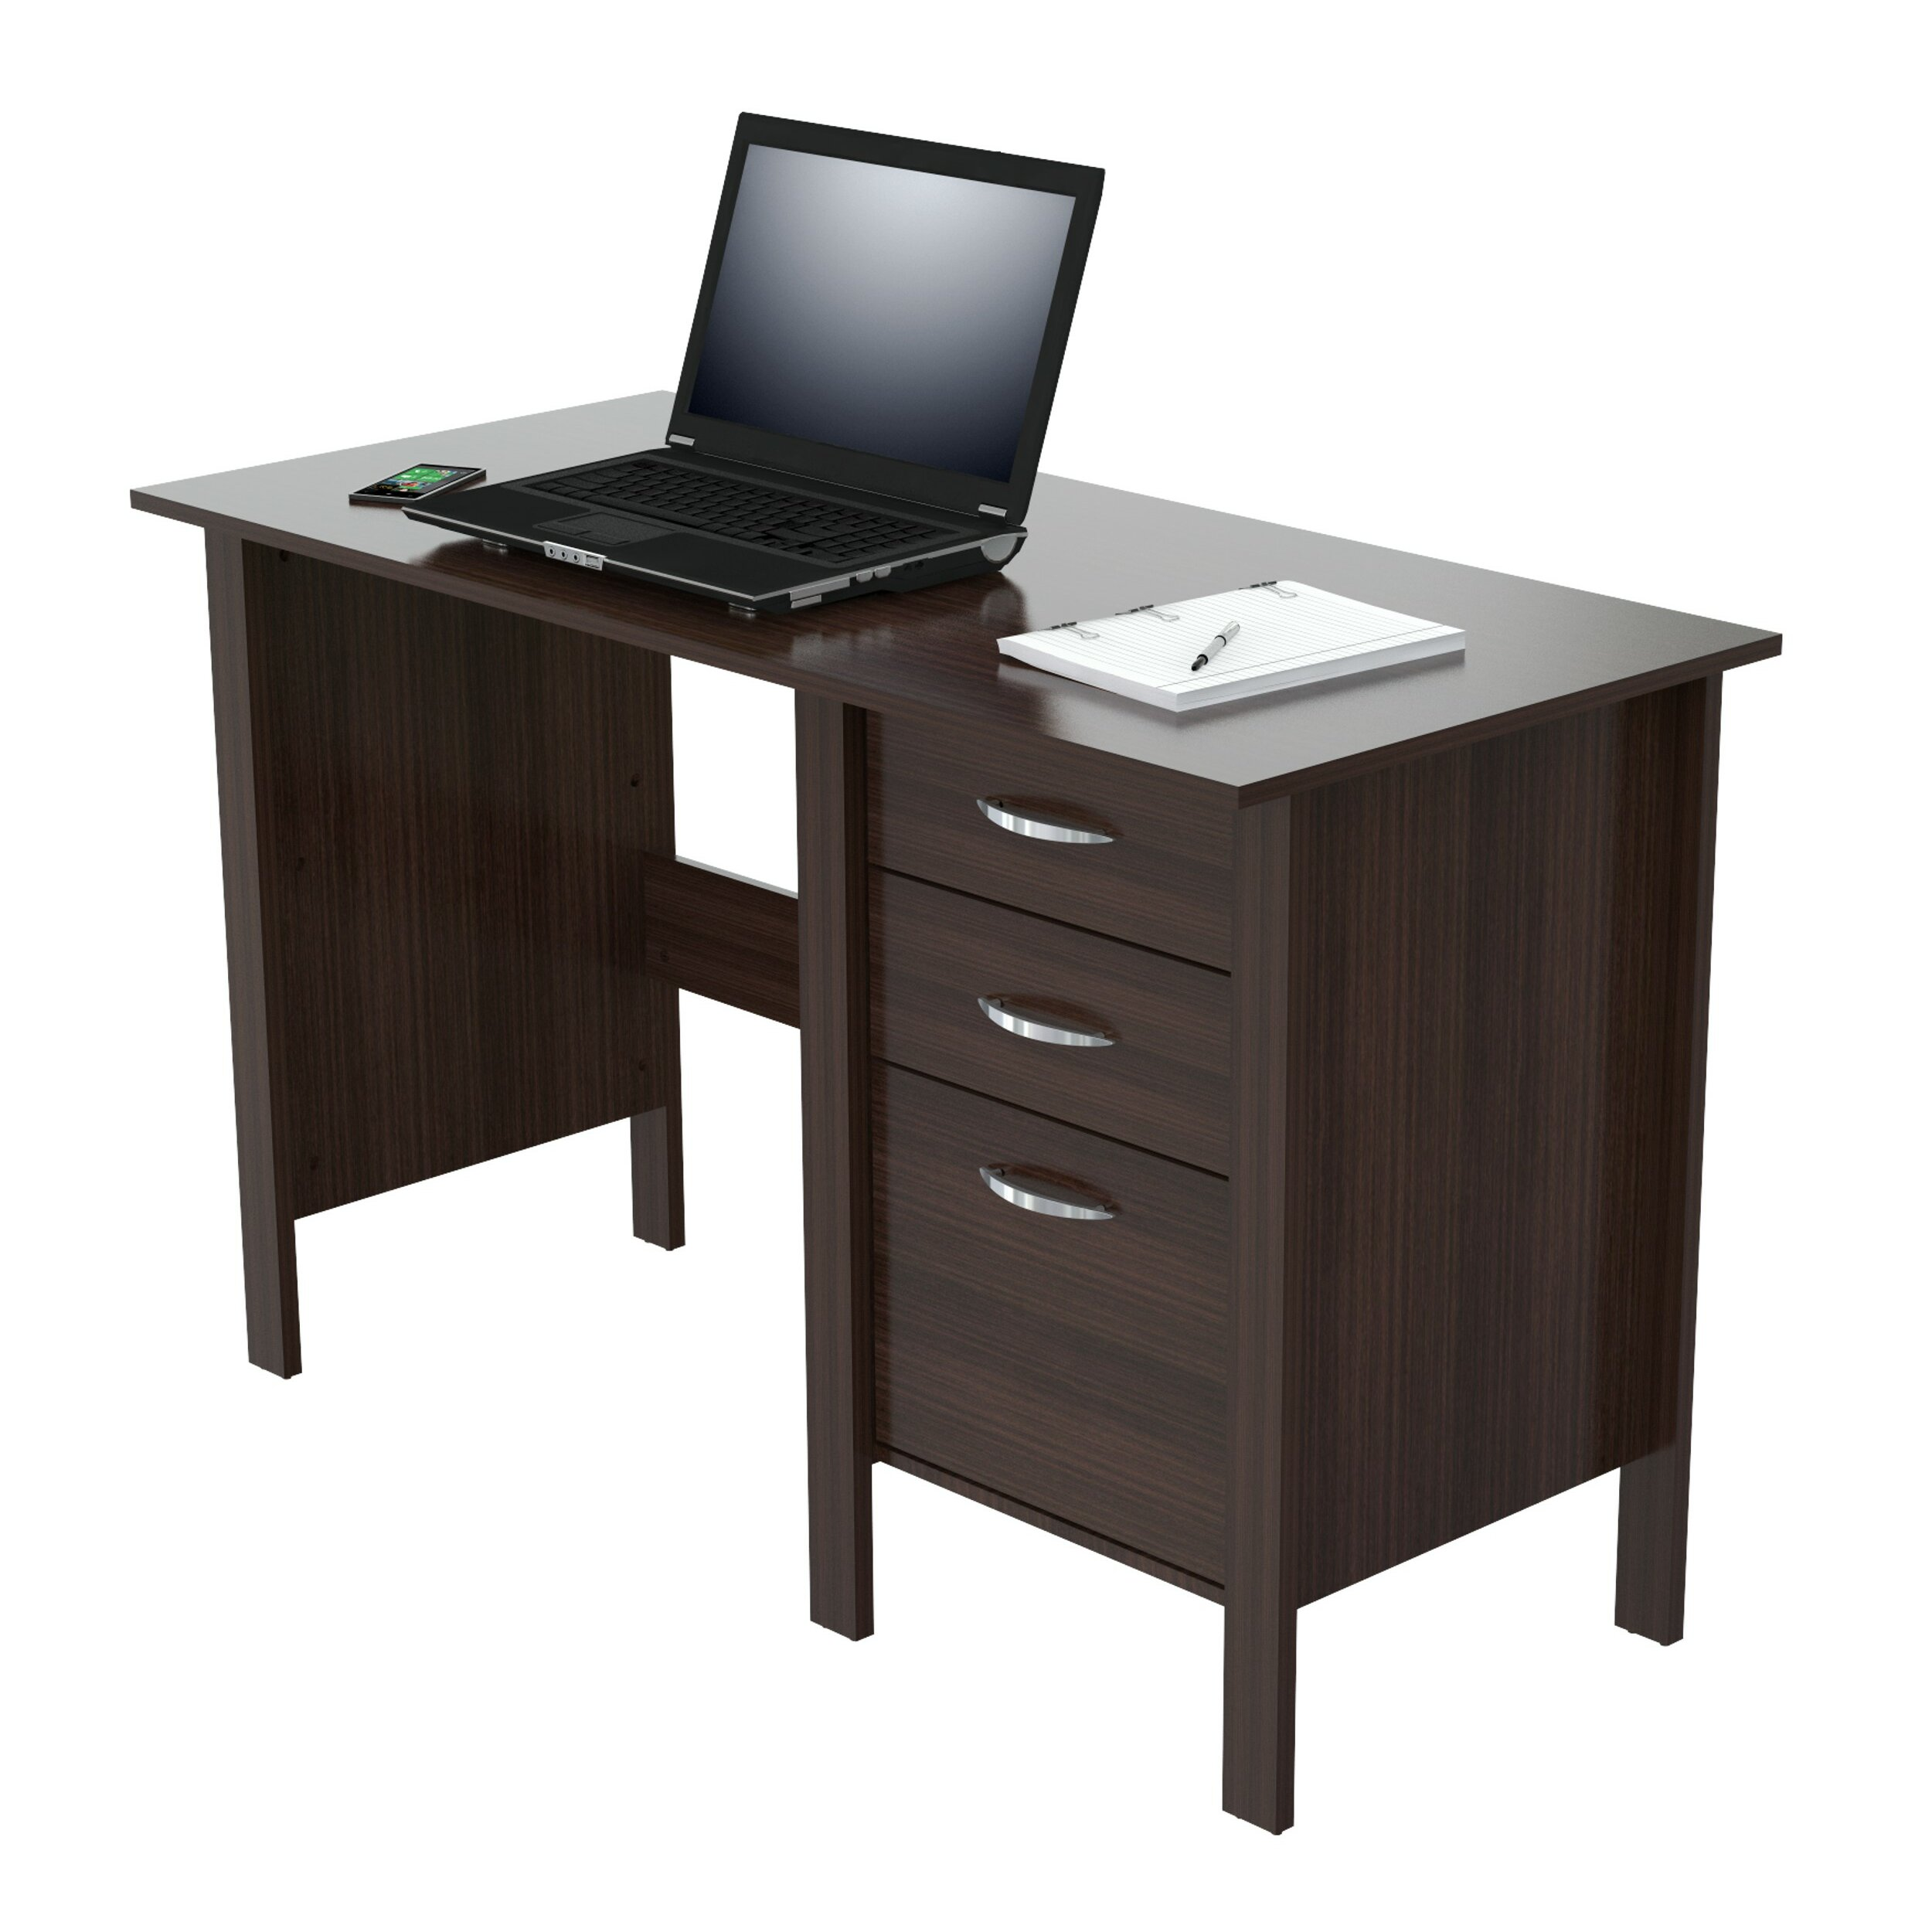 Inval Computer Desk With 3 Drawers & Reviews  Wayfair. Csm Help Desk. C Shaped End Table. Mtsu Help Desk. Expandable Round Table. Desk Organizer Uk. Ashley Dining Tables. Bob Timberlake Desk. Simple Office Desk